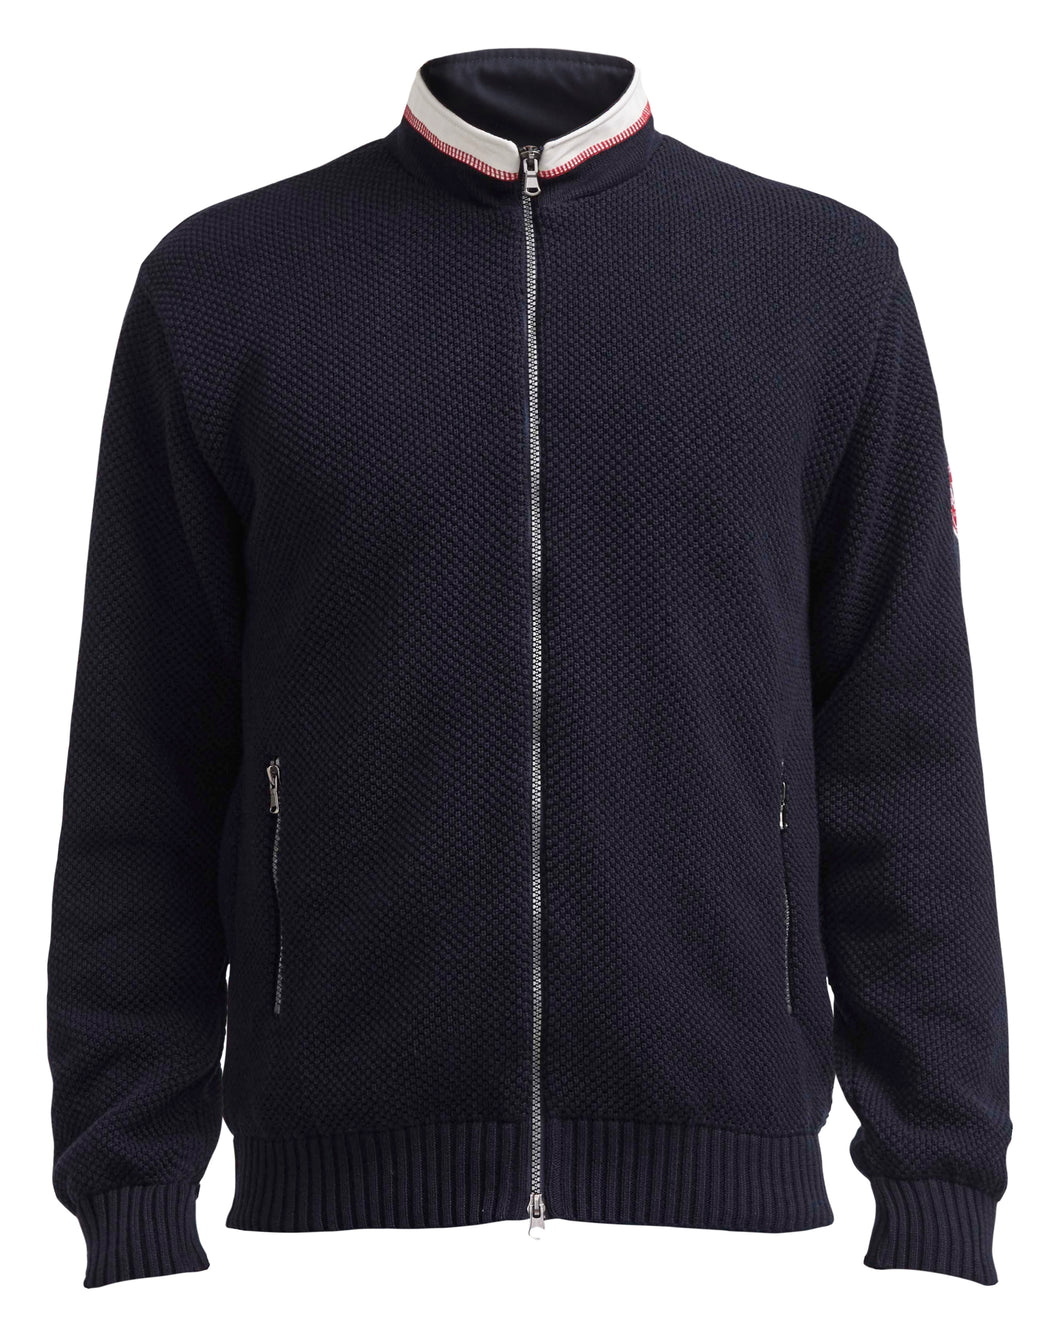 Holebrook Sweden Axel T-Neck Full-zip Windproof Sweater Navy